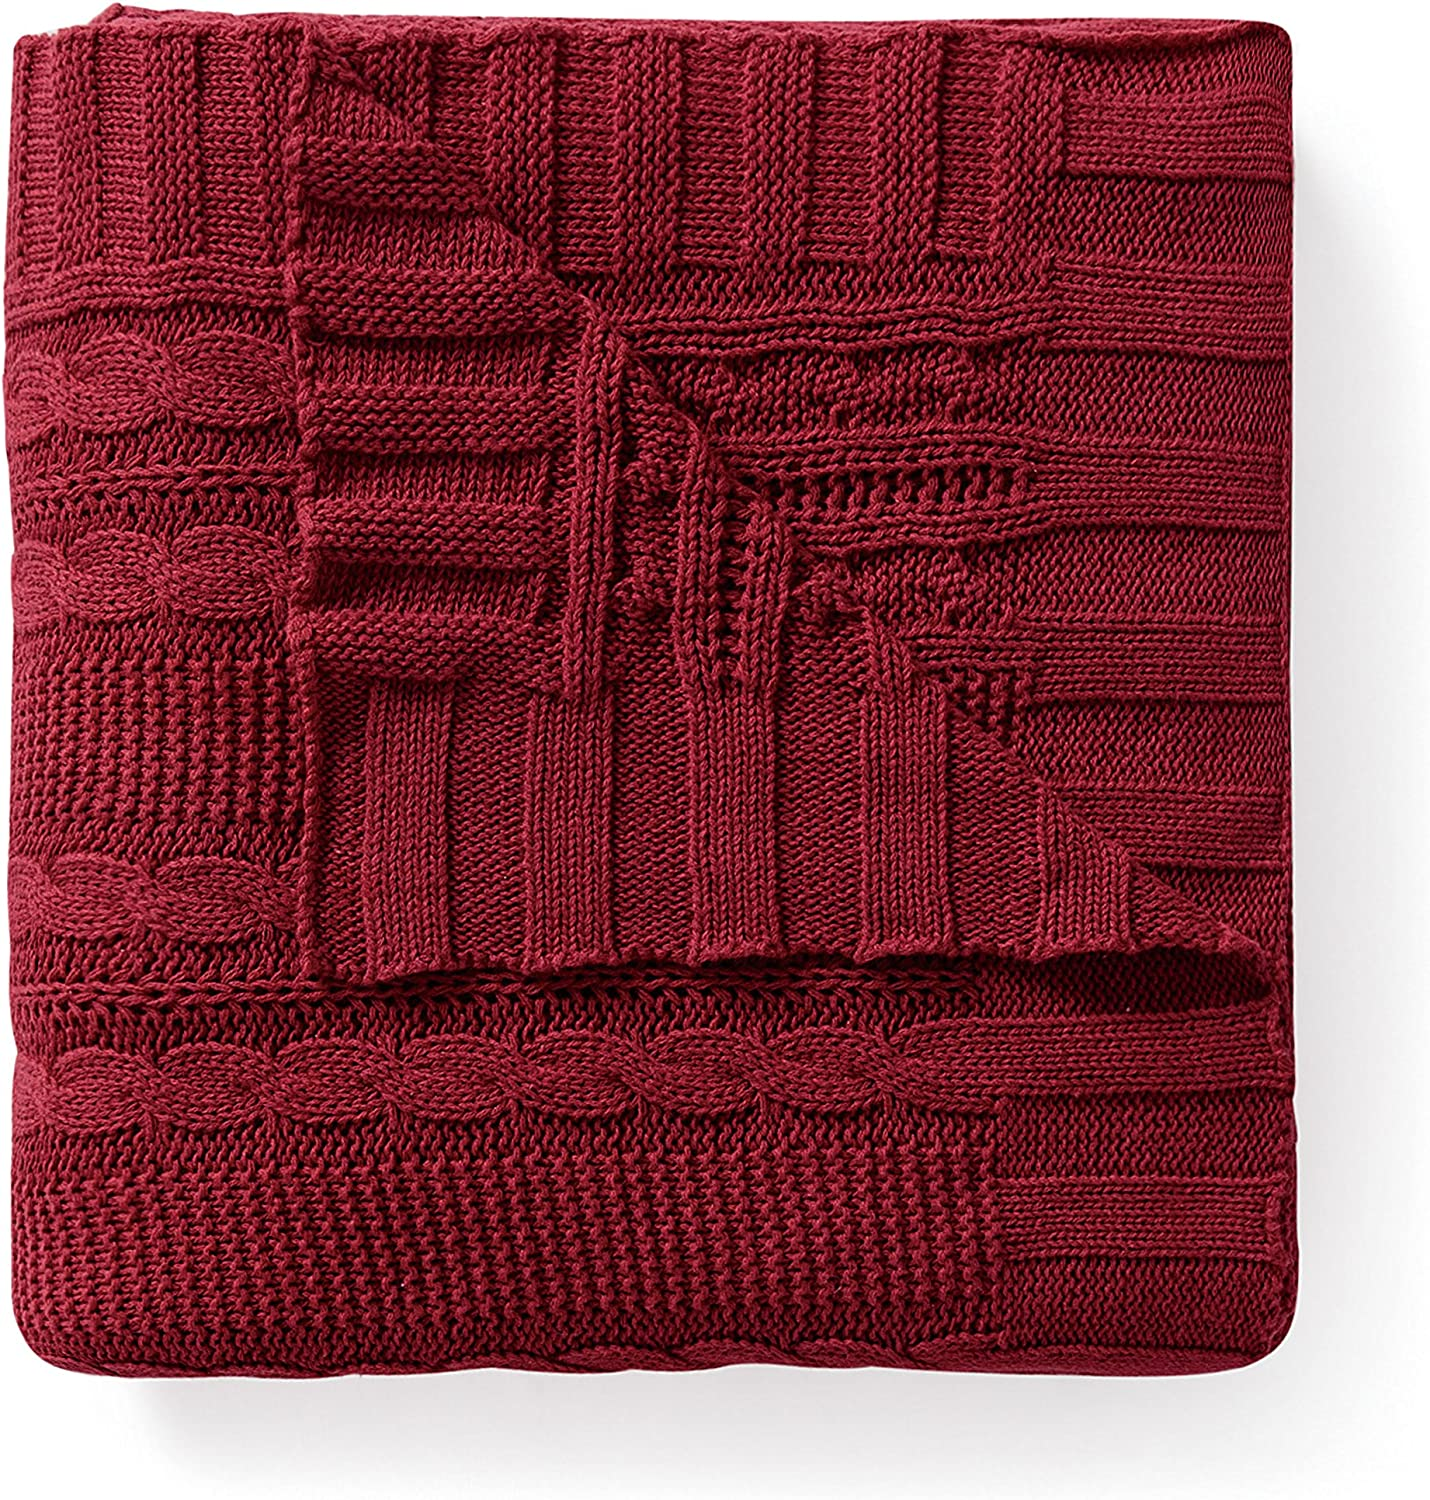 VCNY Home DUI-THR-5070-BB-RD Dublin Cable Knit Throw, 50x70, Red